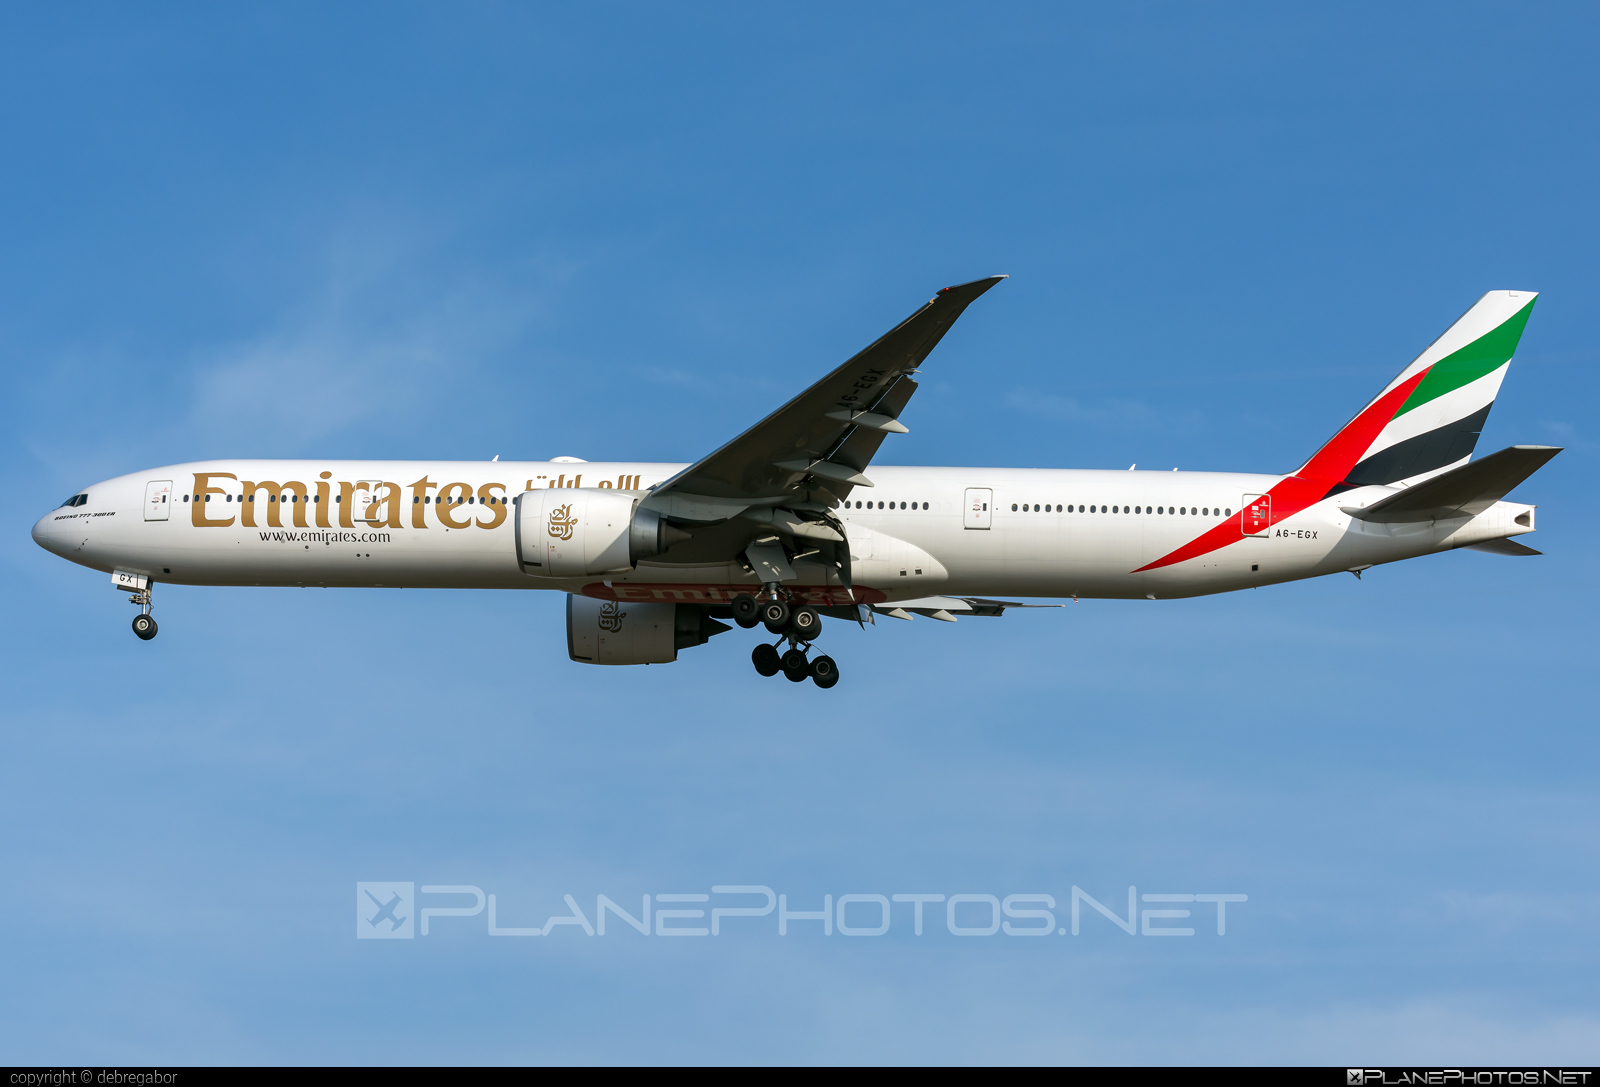 Boeing 777-300ER - A6-EGX operated by Emirates #b777 #b777er #boeing #boeing777 #emirates #tripleseven